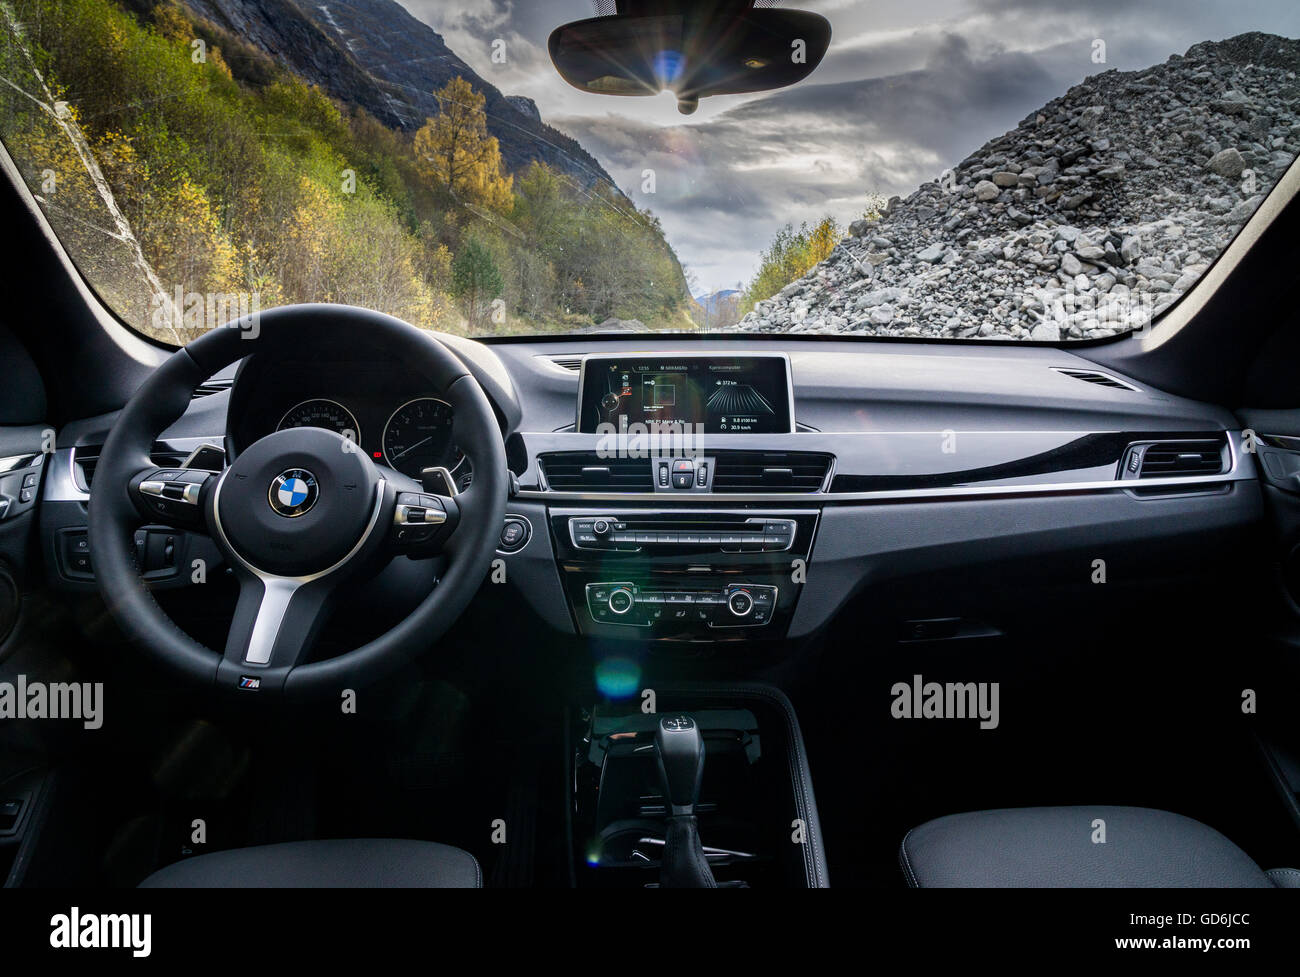 Bmw X1 Interior Stock Photo Alamy